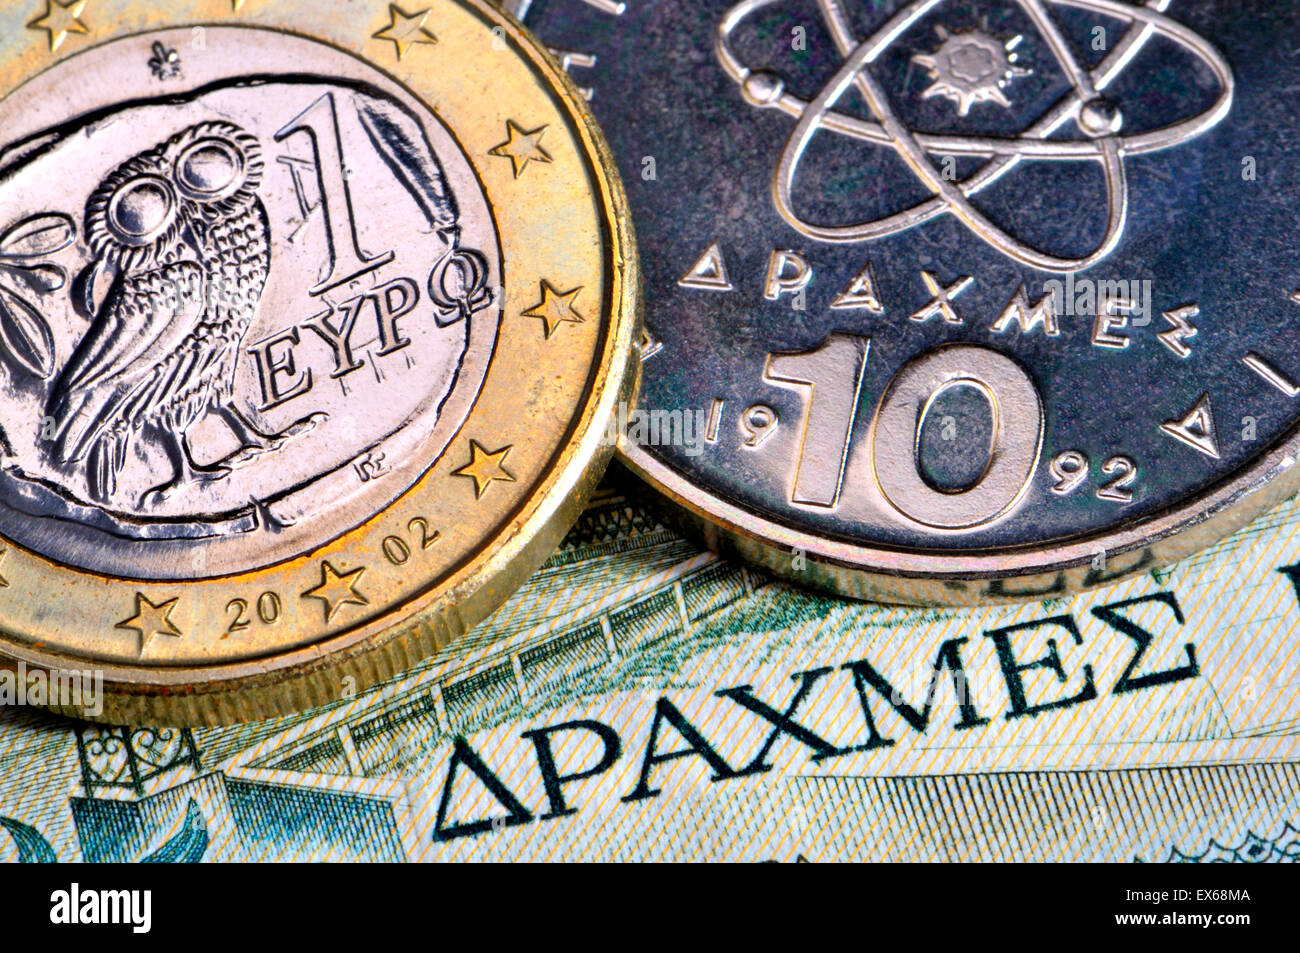 Greek currency - drachmas and 1 Euro on a 1980s 50 Drachma note - Stock Image